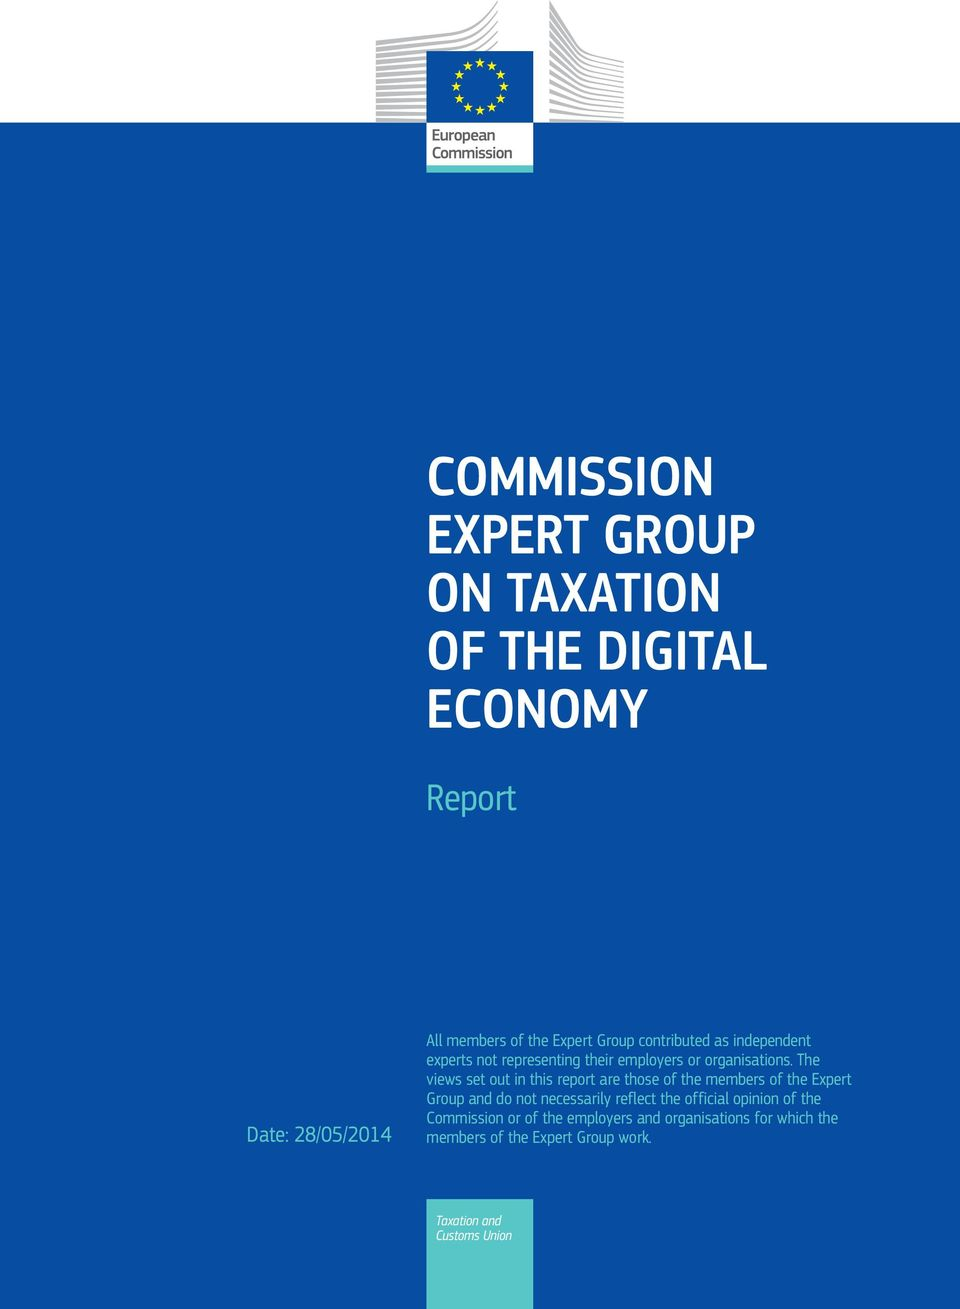 The views set out in this report are those of the members of the Expert Group and do not necessarily reflect the